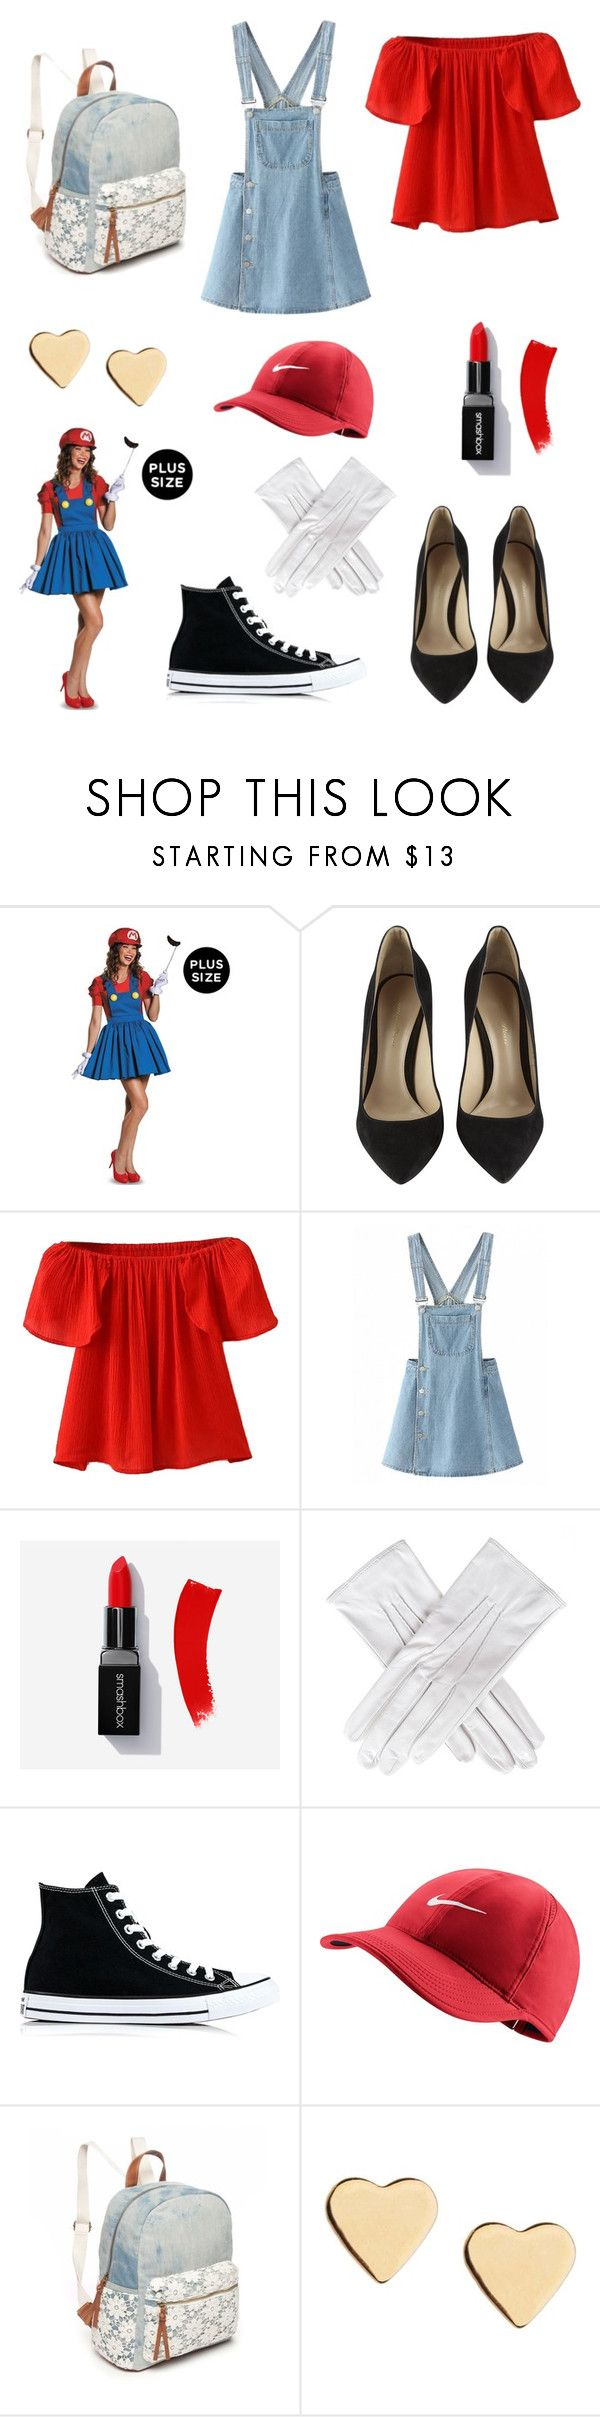 """""""girl mario halloween costume"""" by livvylou04 ❤ liked on Polyvore featuring Gianvito Rossi, WithChic, Black, Converse, NIKE, Red Camel, Lipsy, halloweencostume and DIYHalloween"""